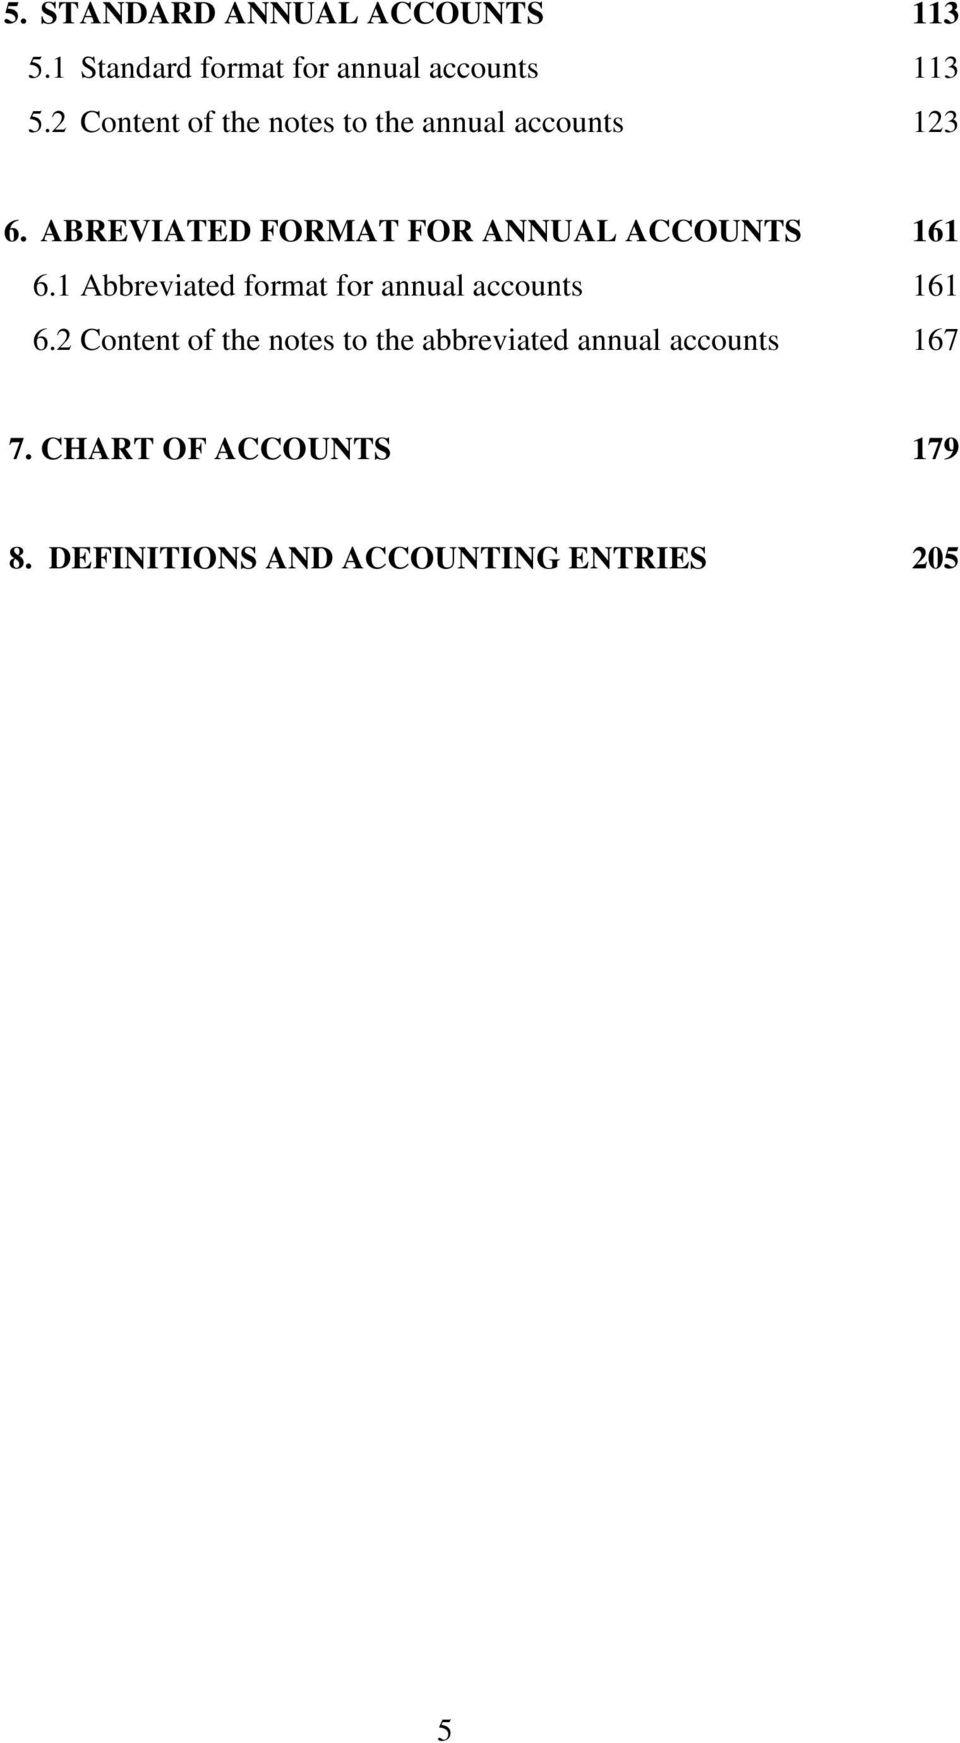 ABREVIATED FORMAT FOR ANNUAL ACCOUNTS 161 6.